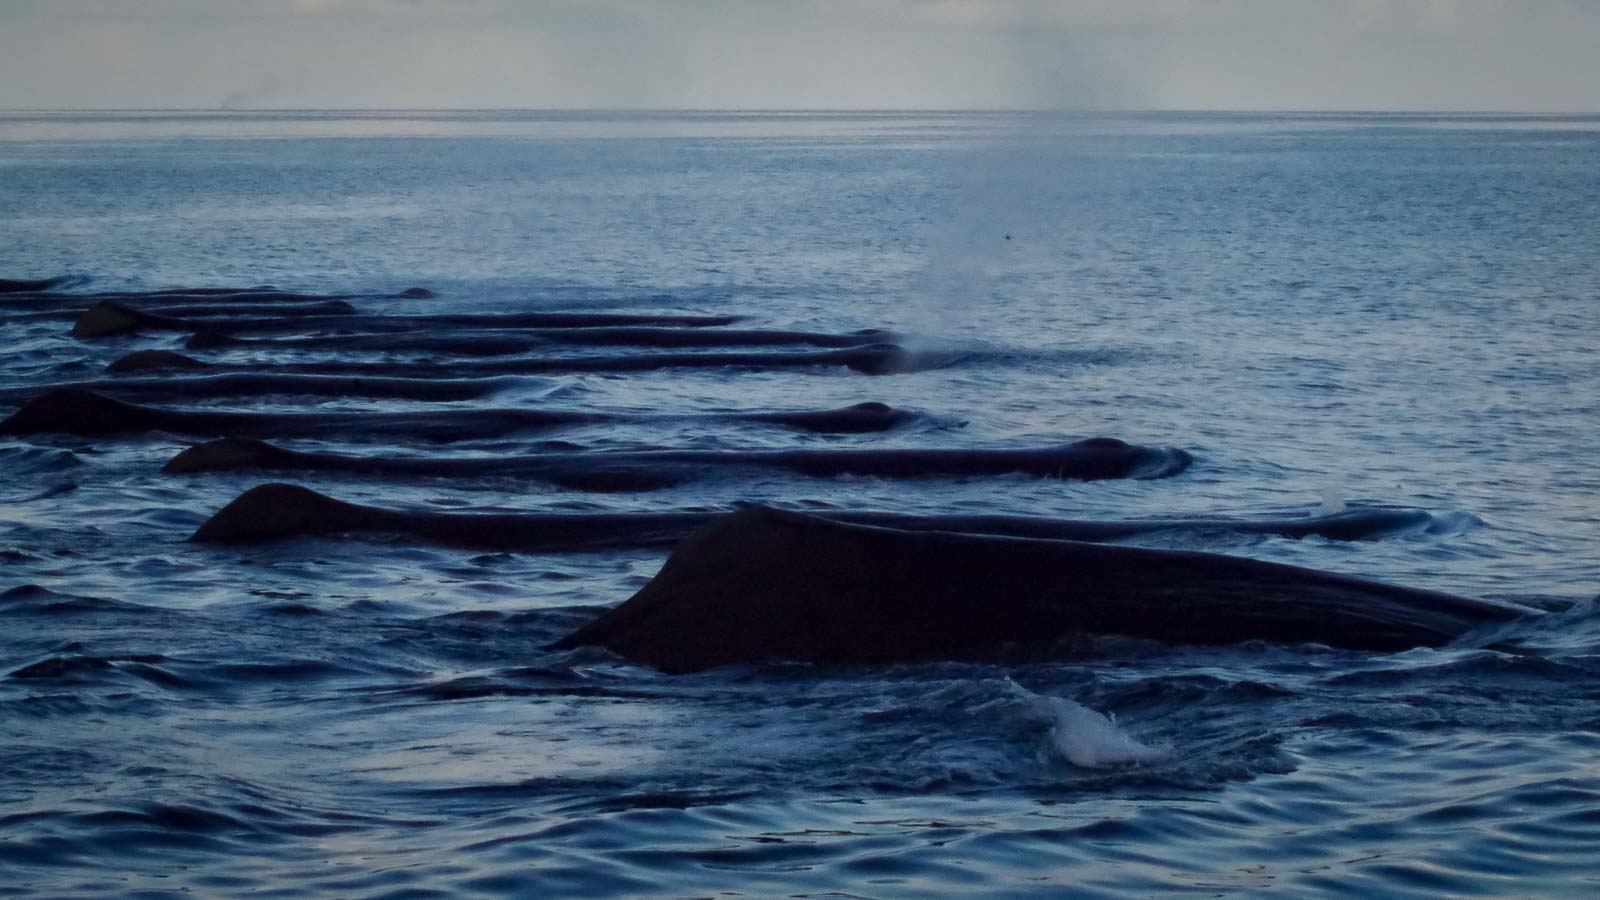 Sperm whales (Physeter macrocephalus) sighted in Maldives by Marine Savers